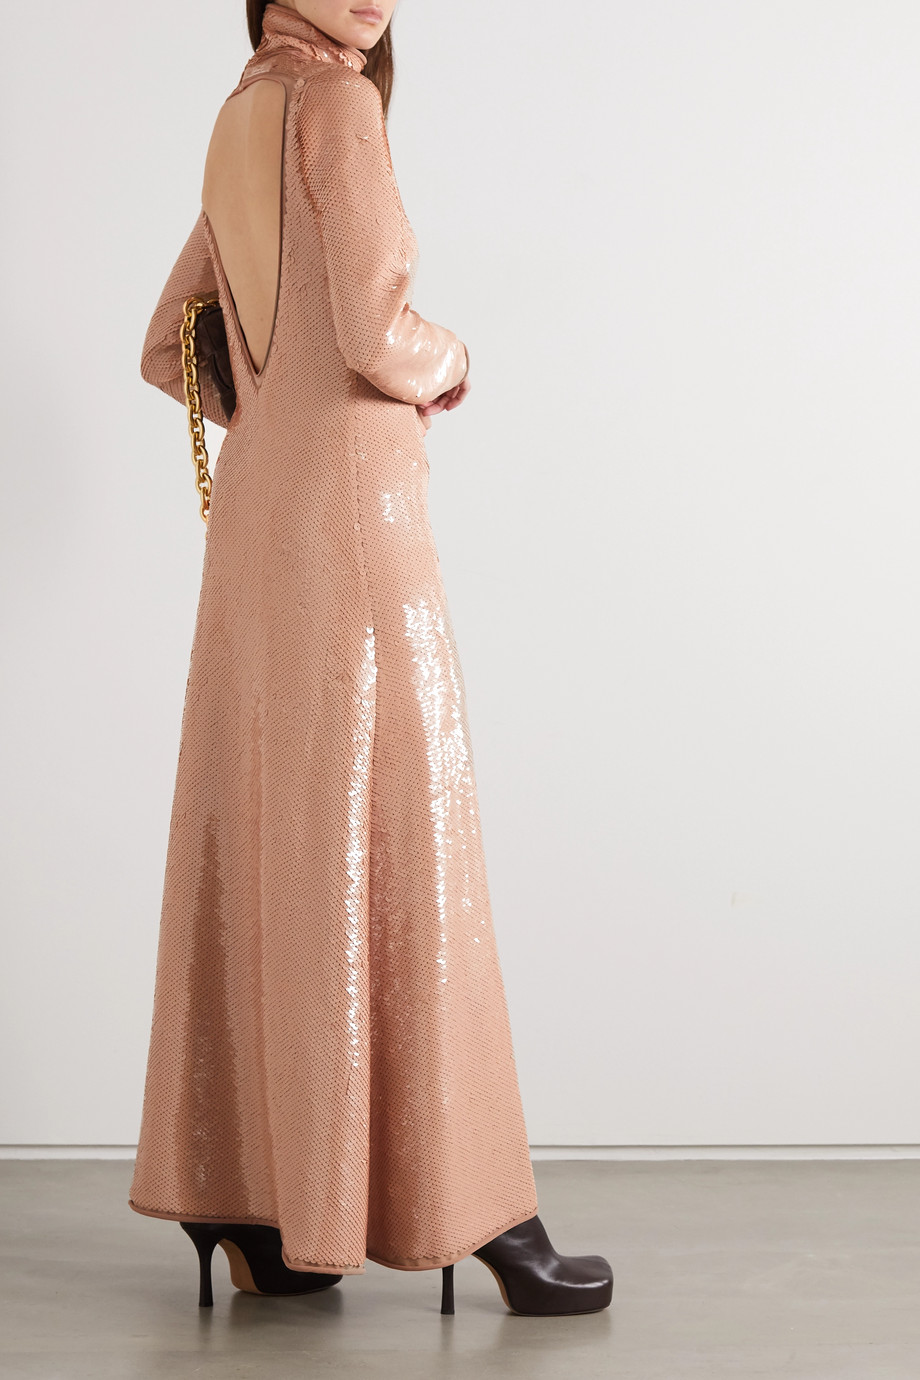 Bottega Veneta Open-back sequined jersey turtleneck gown